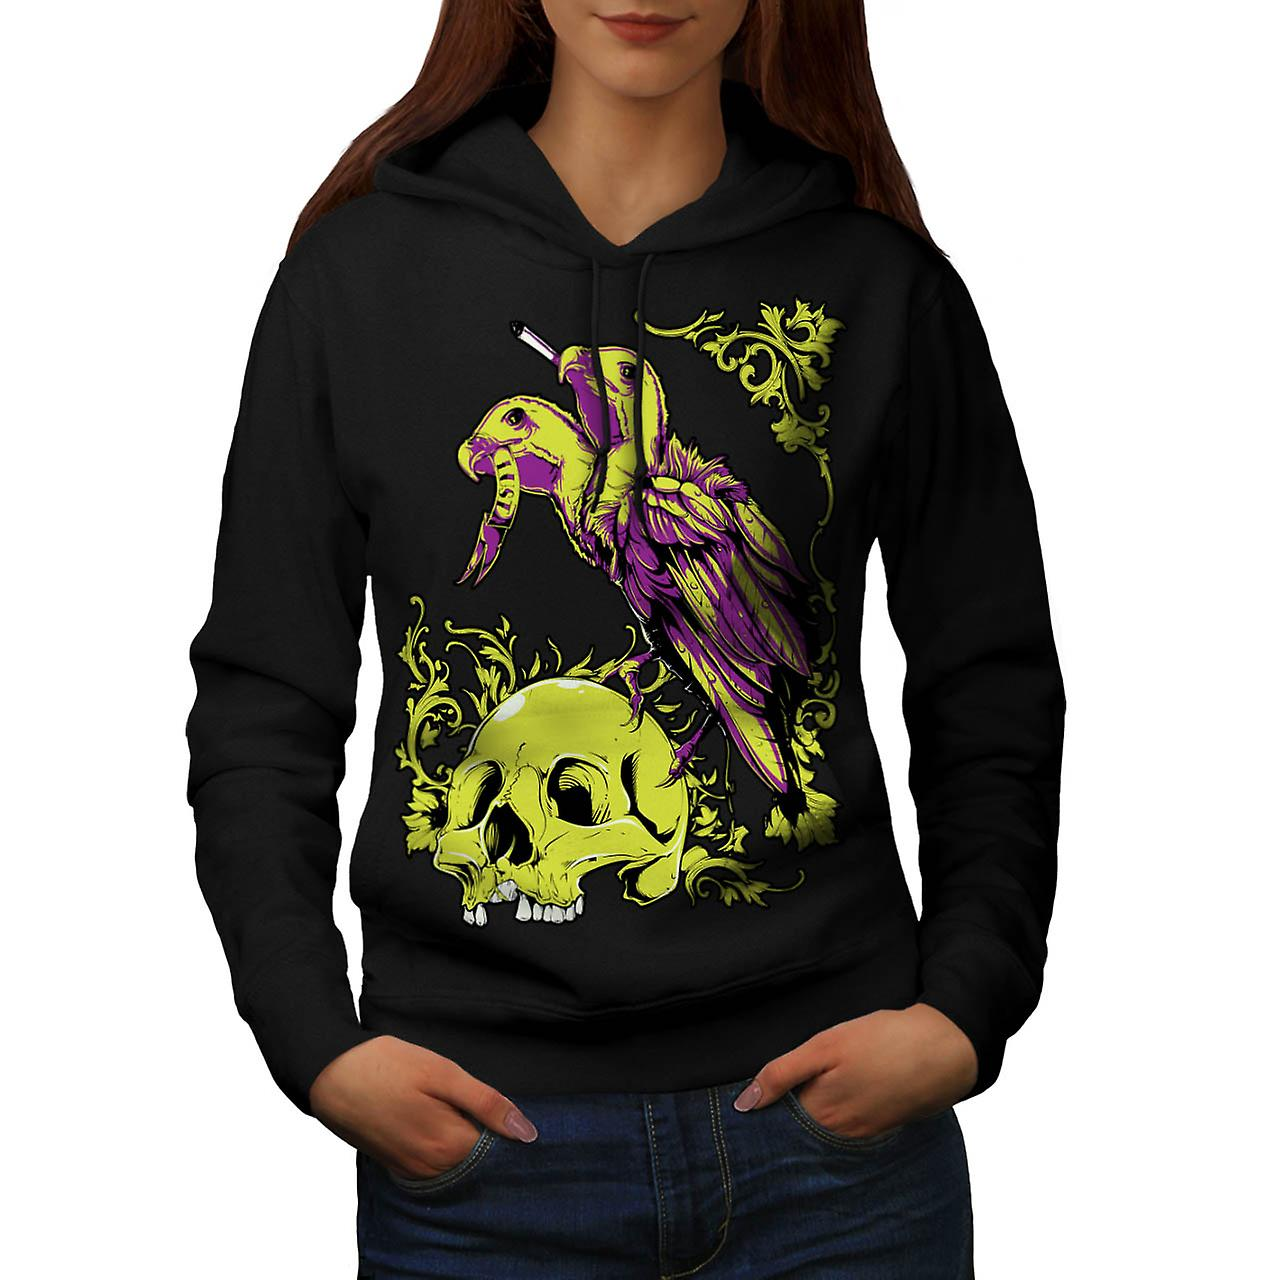 Scavenger Lust Crow Burial Land Women Black Hoodie | Wellcoda